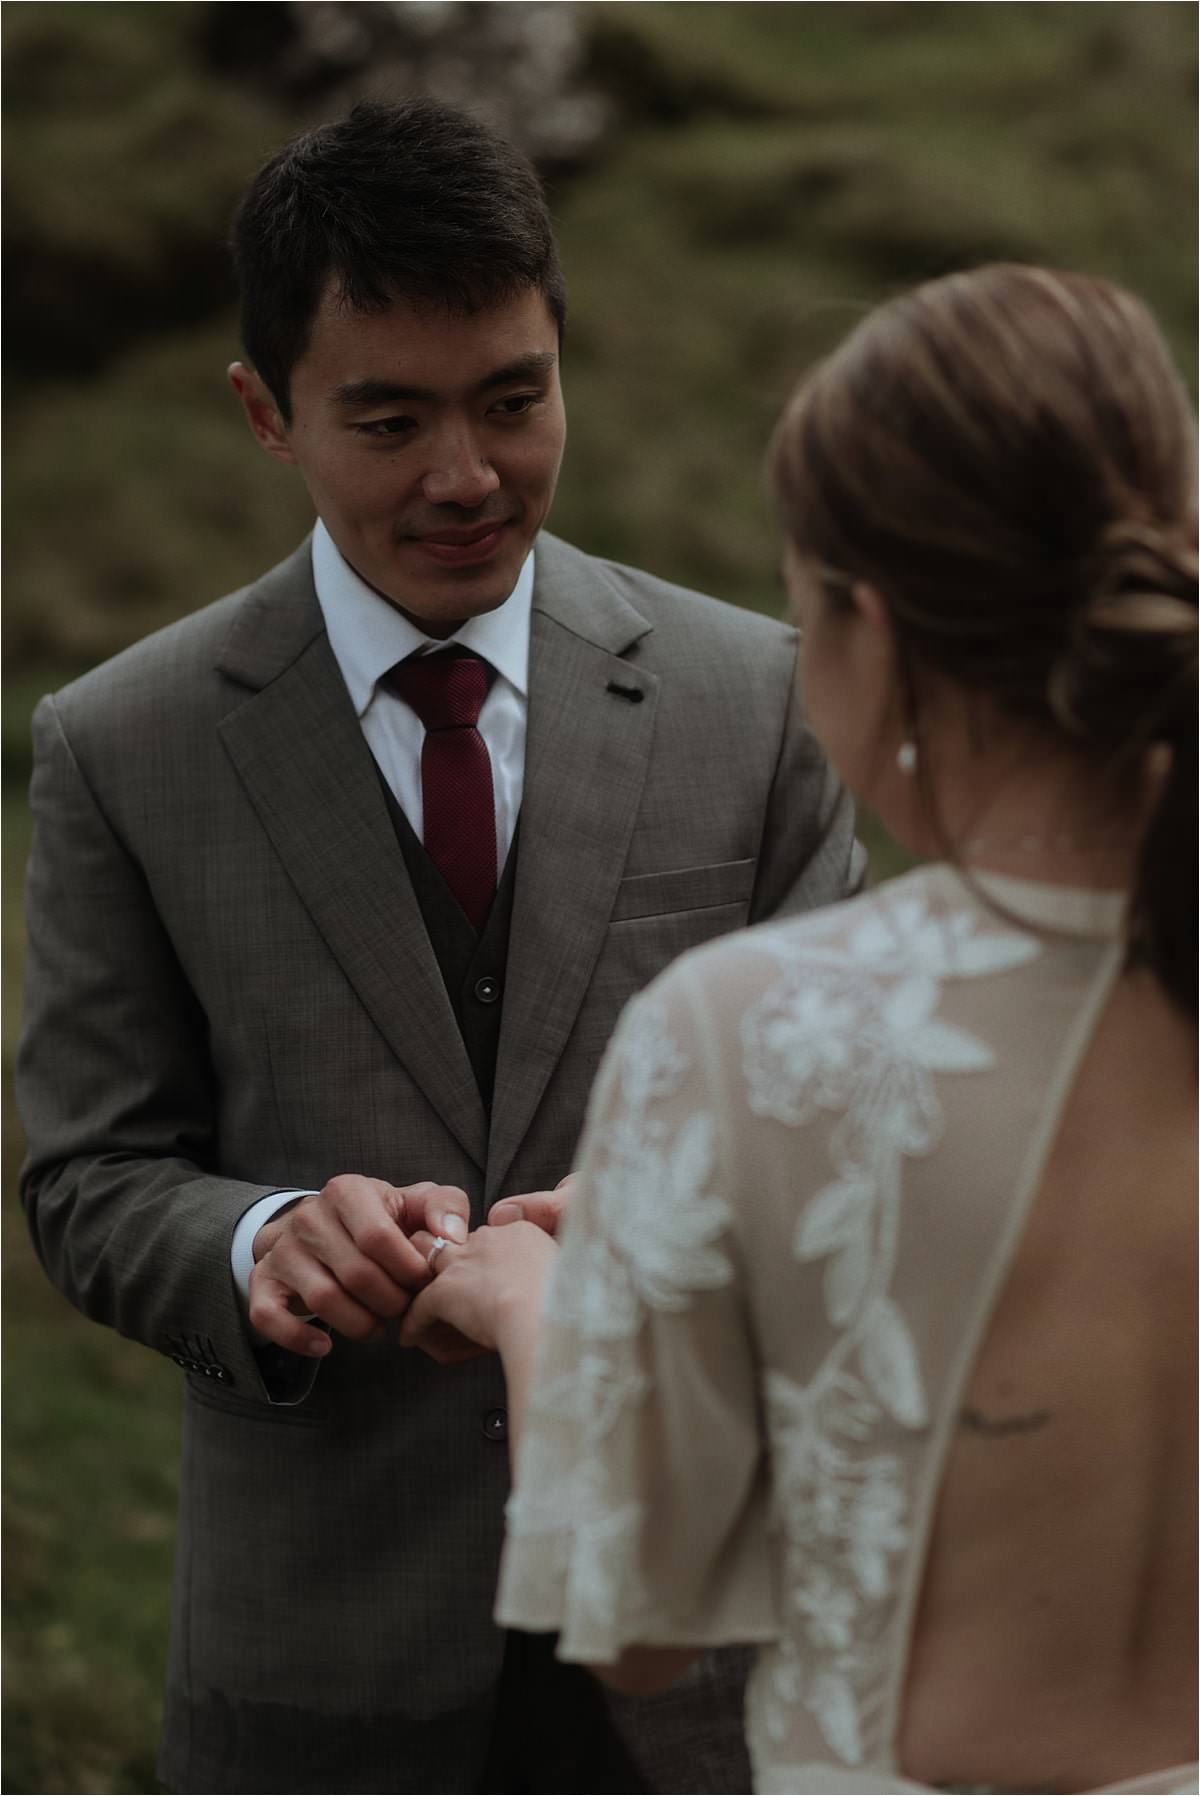 scottish elopement ceremony with rings